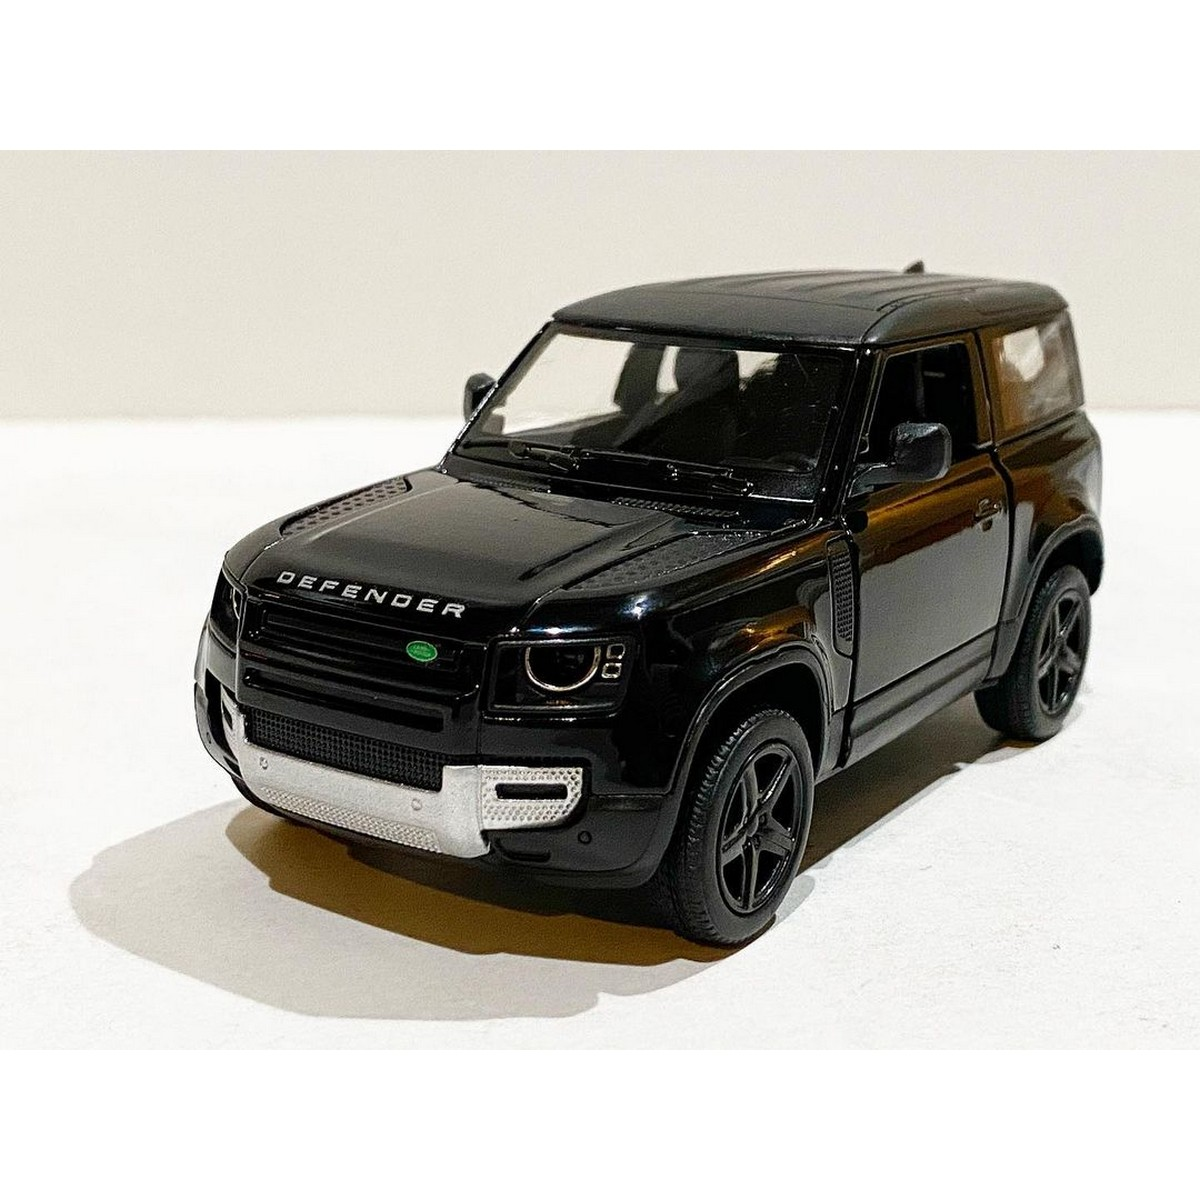 Kinsmart Land Rover Defender 90 - 1:36 scale Diecast Toy Car 5 inches